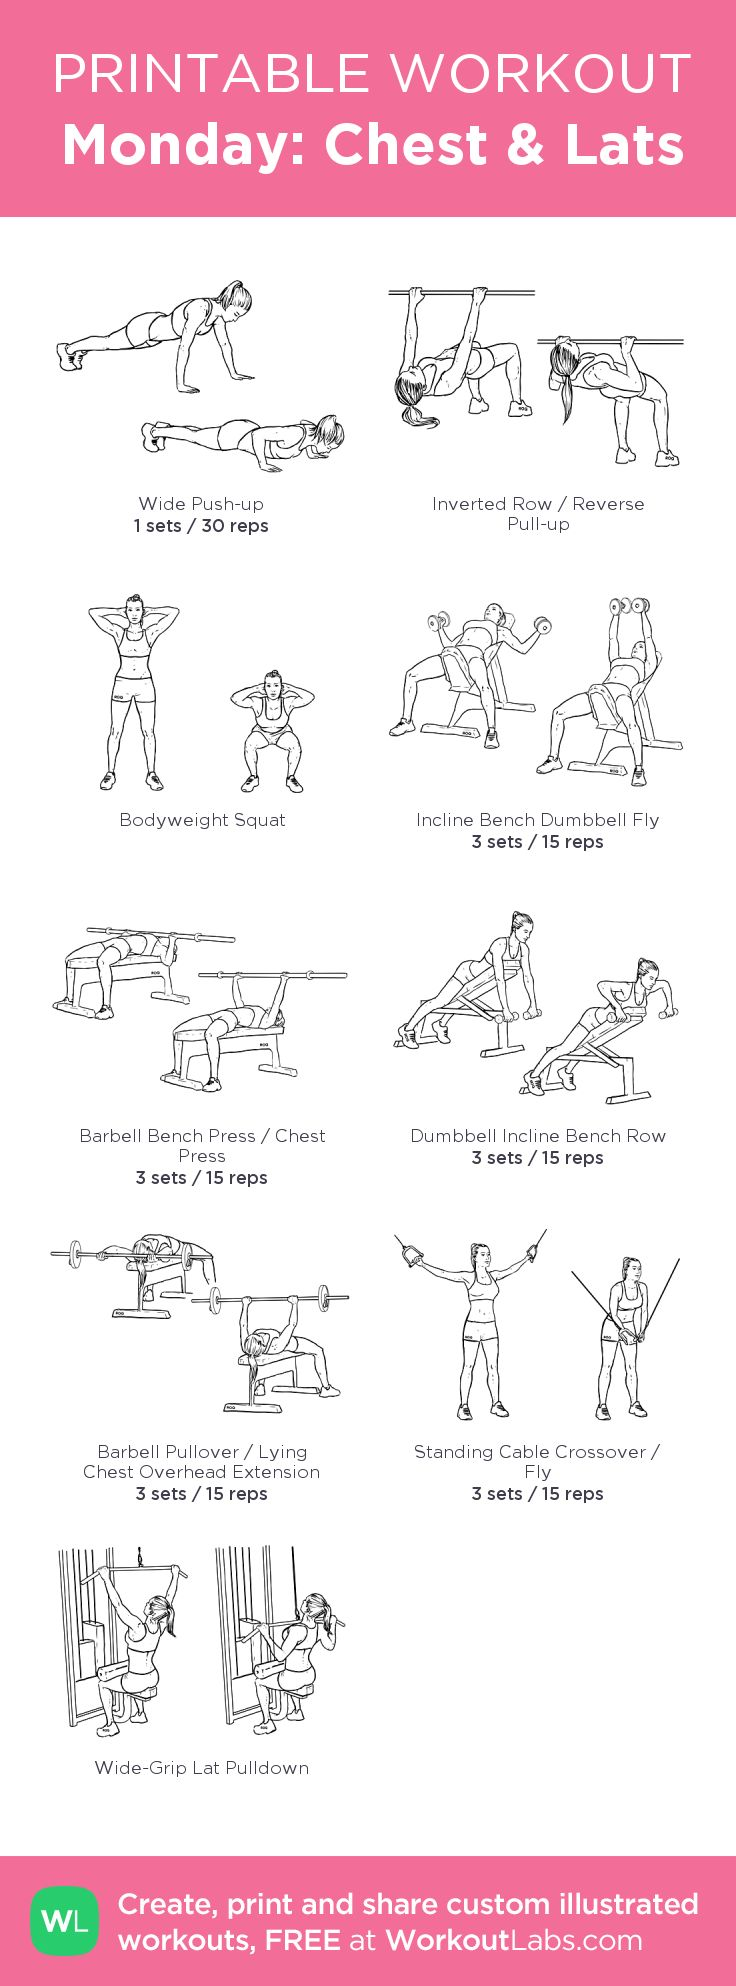 AMRAP 15 mins: 5 inverted row, 10 push up, 15 squats. WEIGHT PYRAMIDS: 15 - 10 - 6 reps. 6 exercises for Chest and Lats